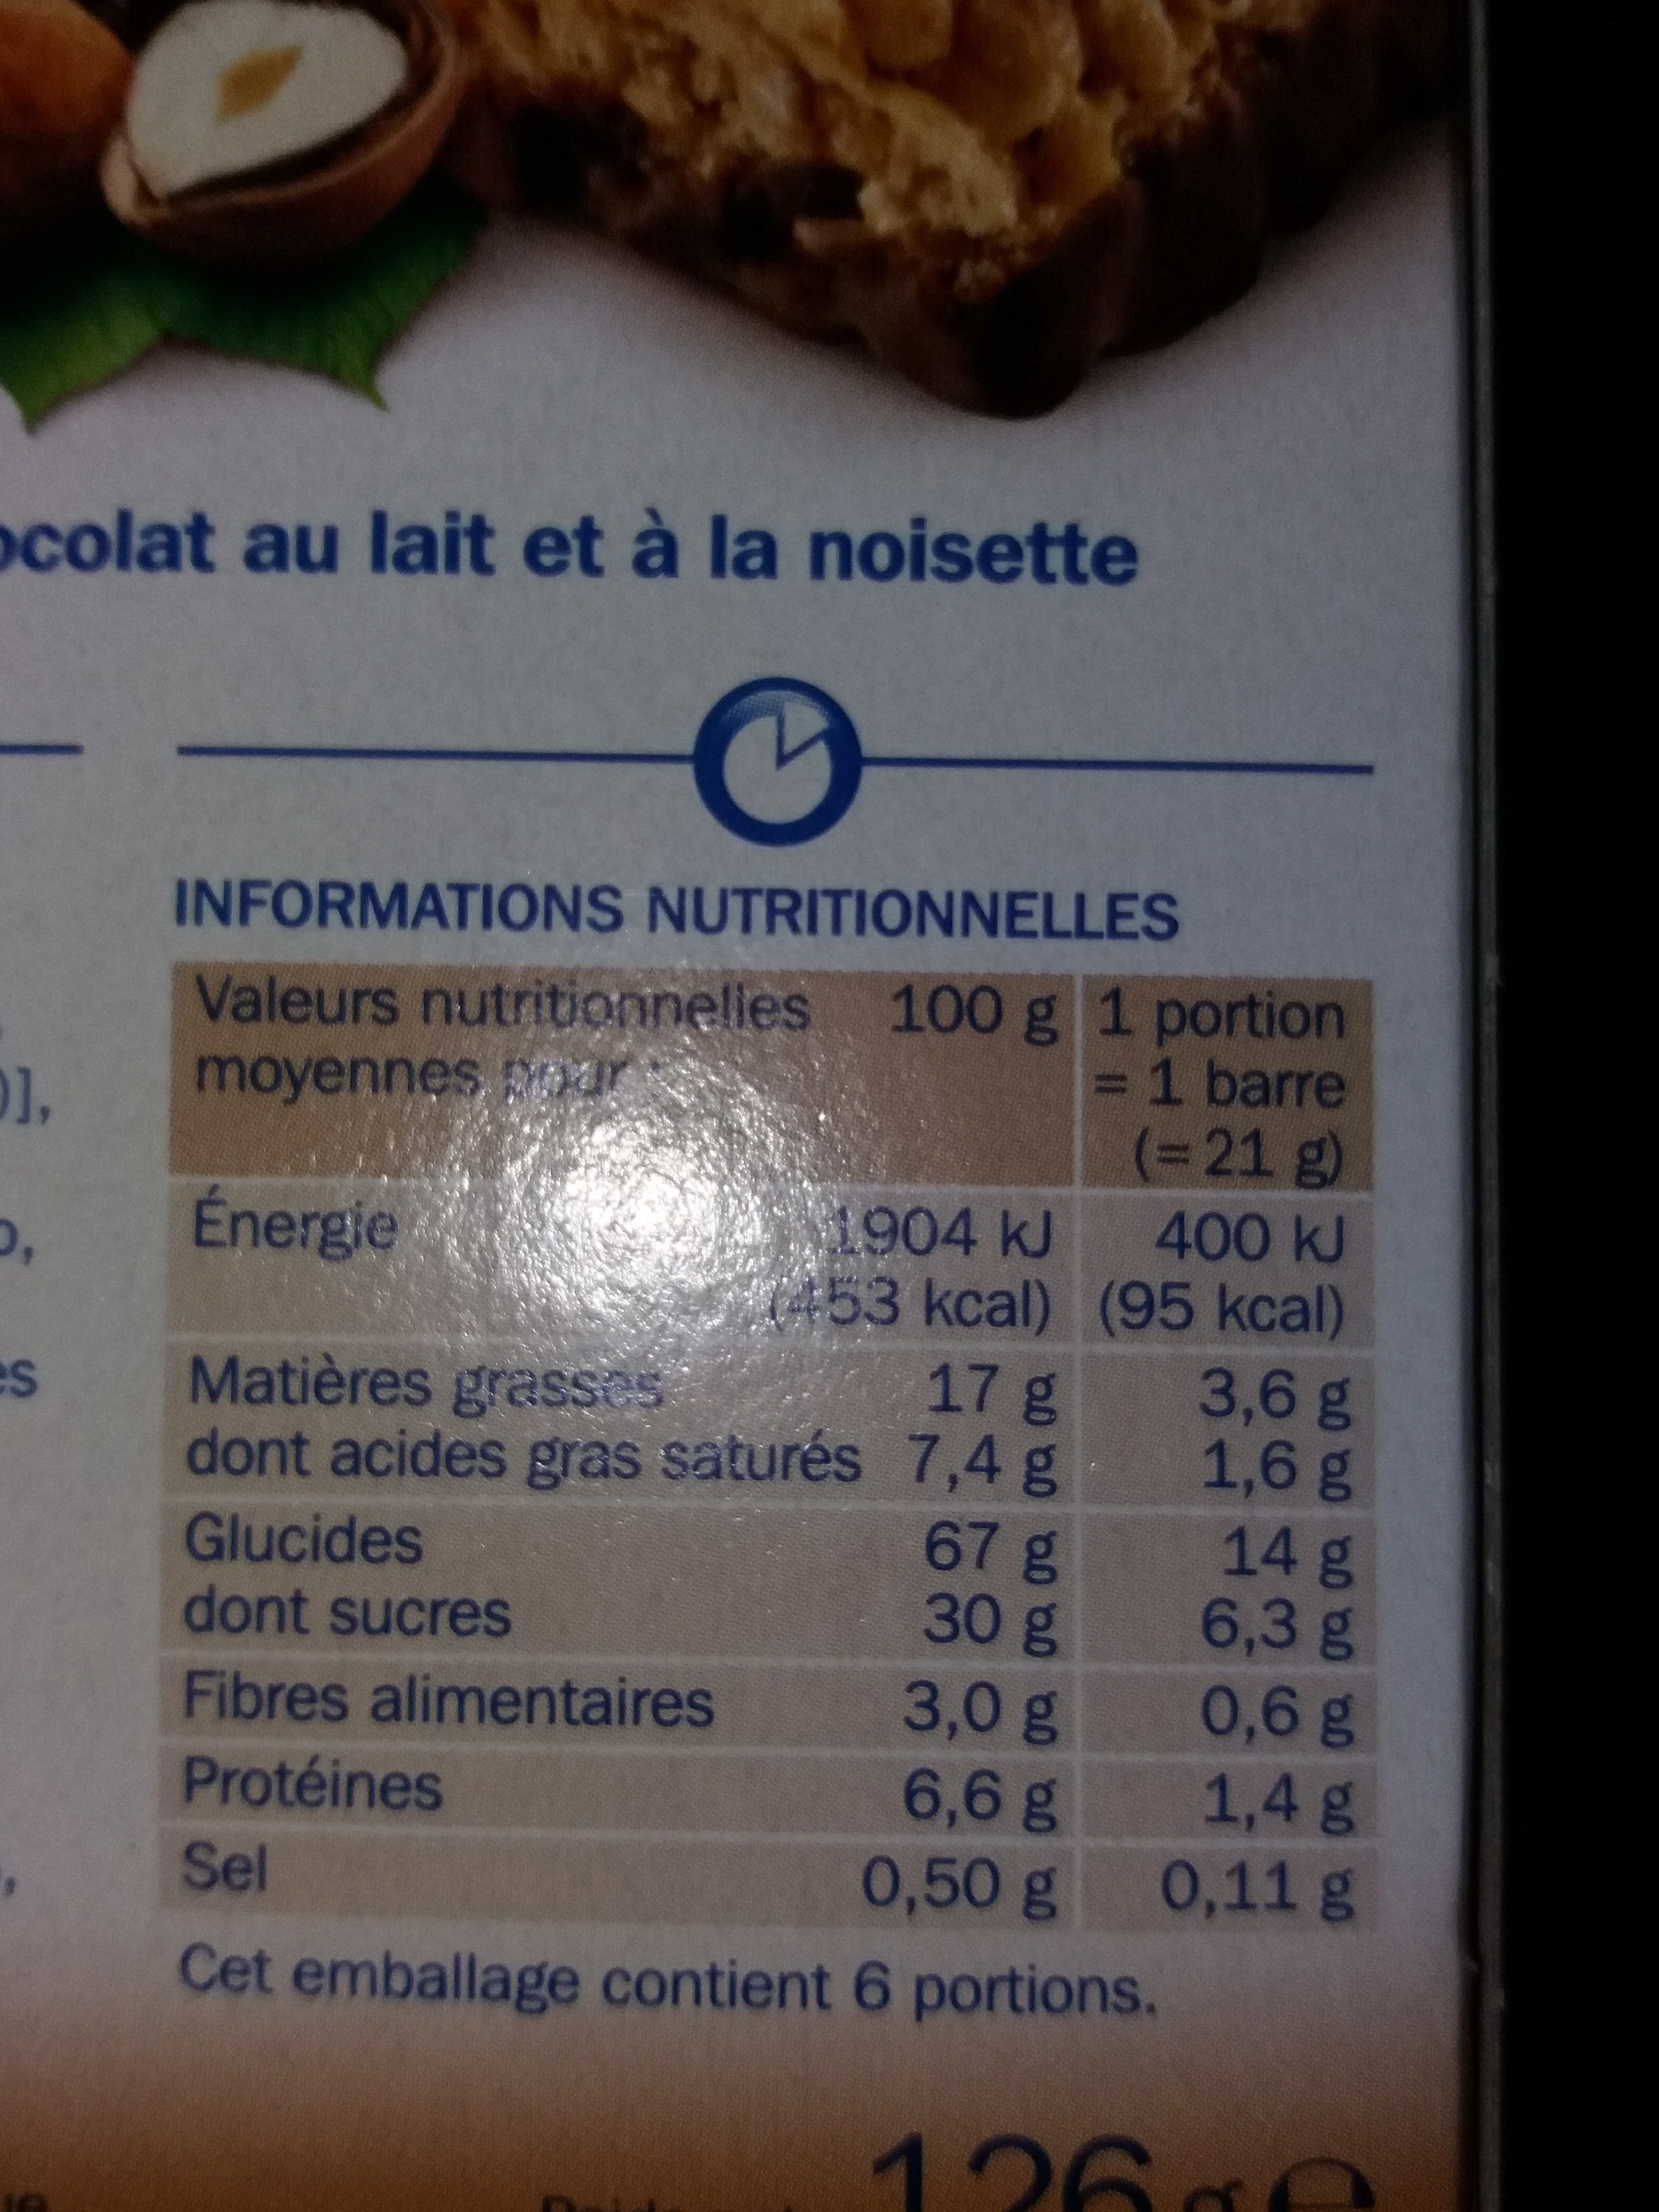 Barres céréales chocolat au lait noisette x 6 - Nutrition facts